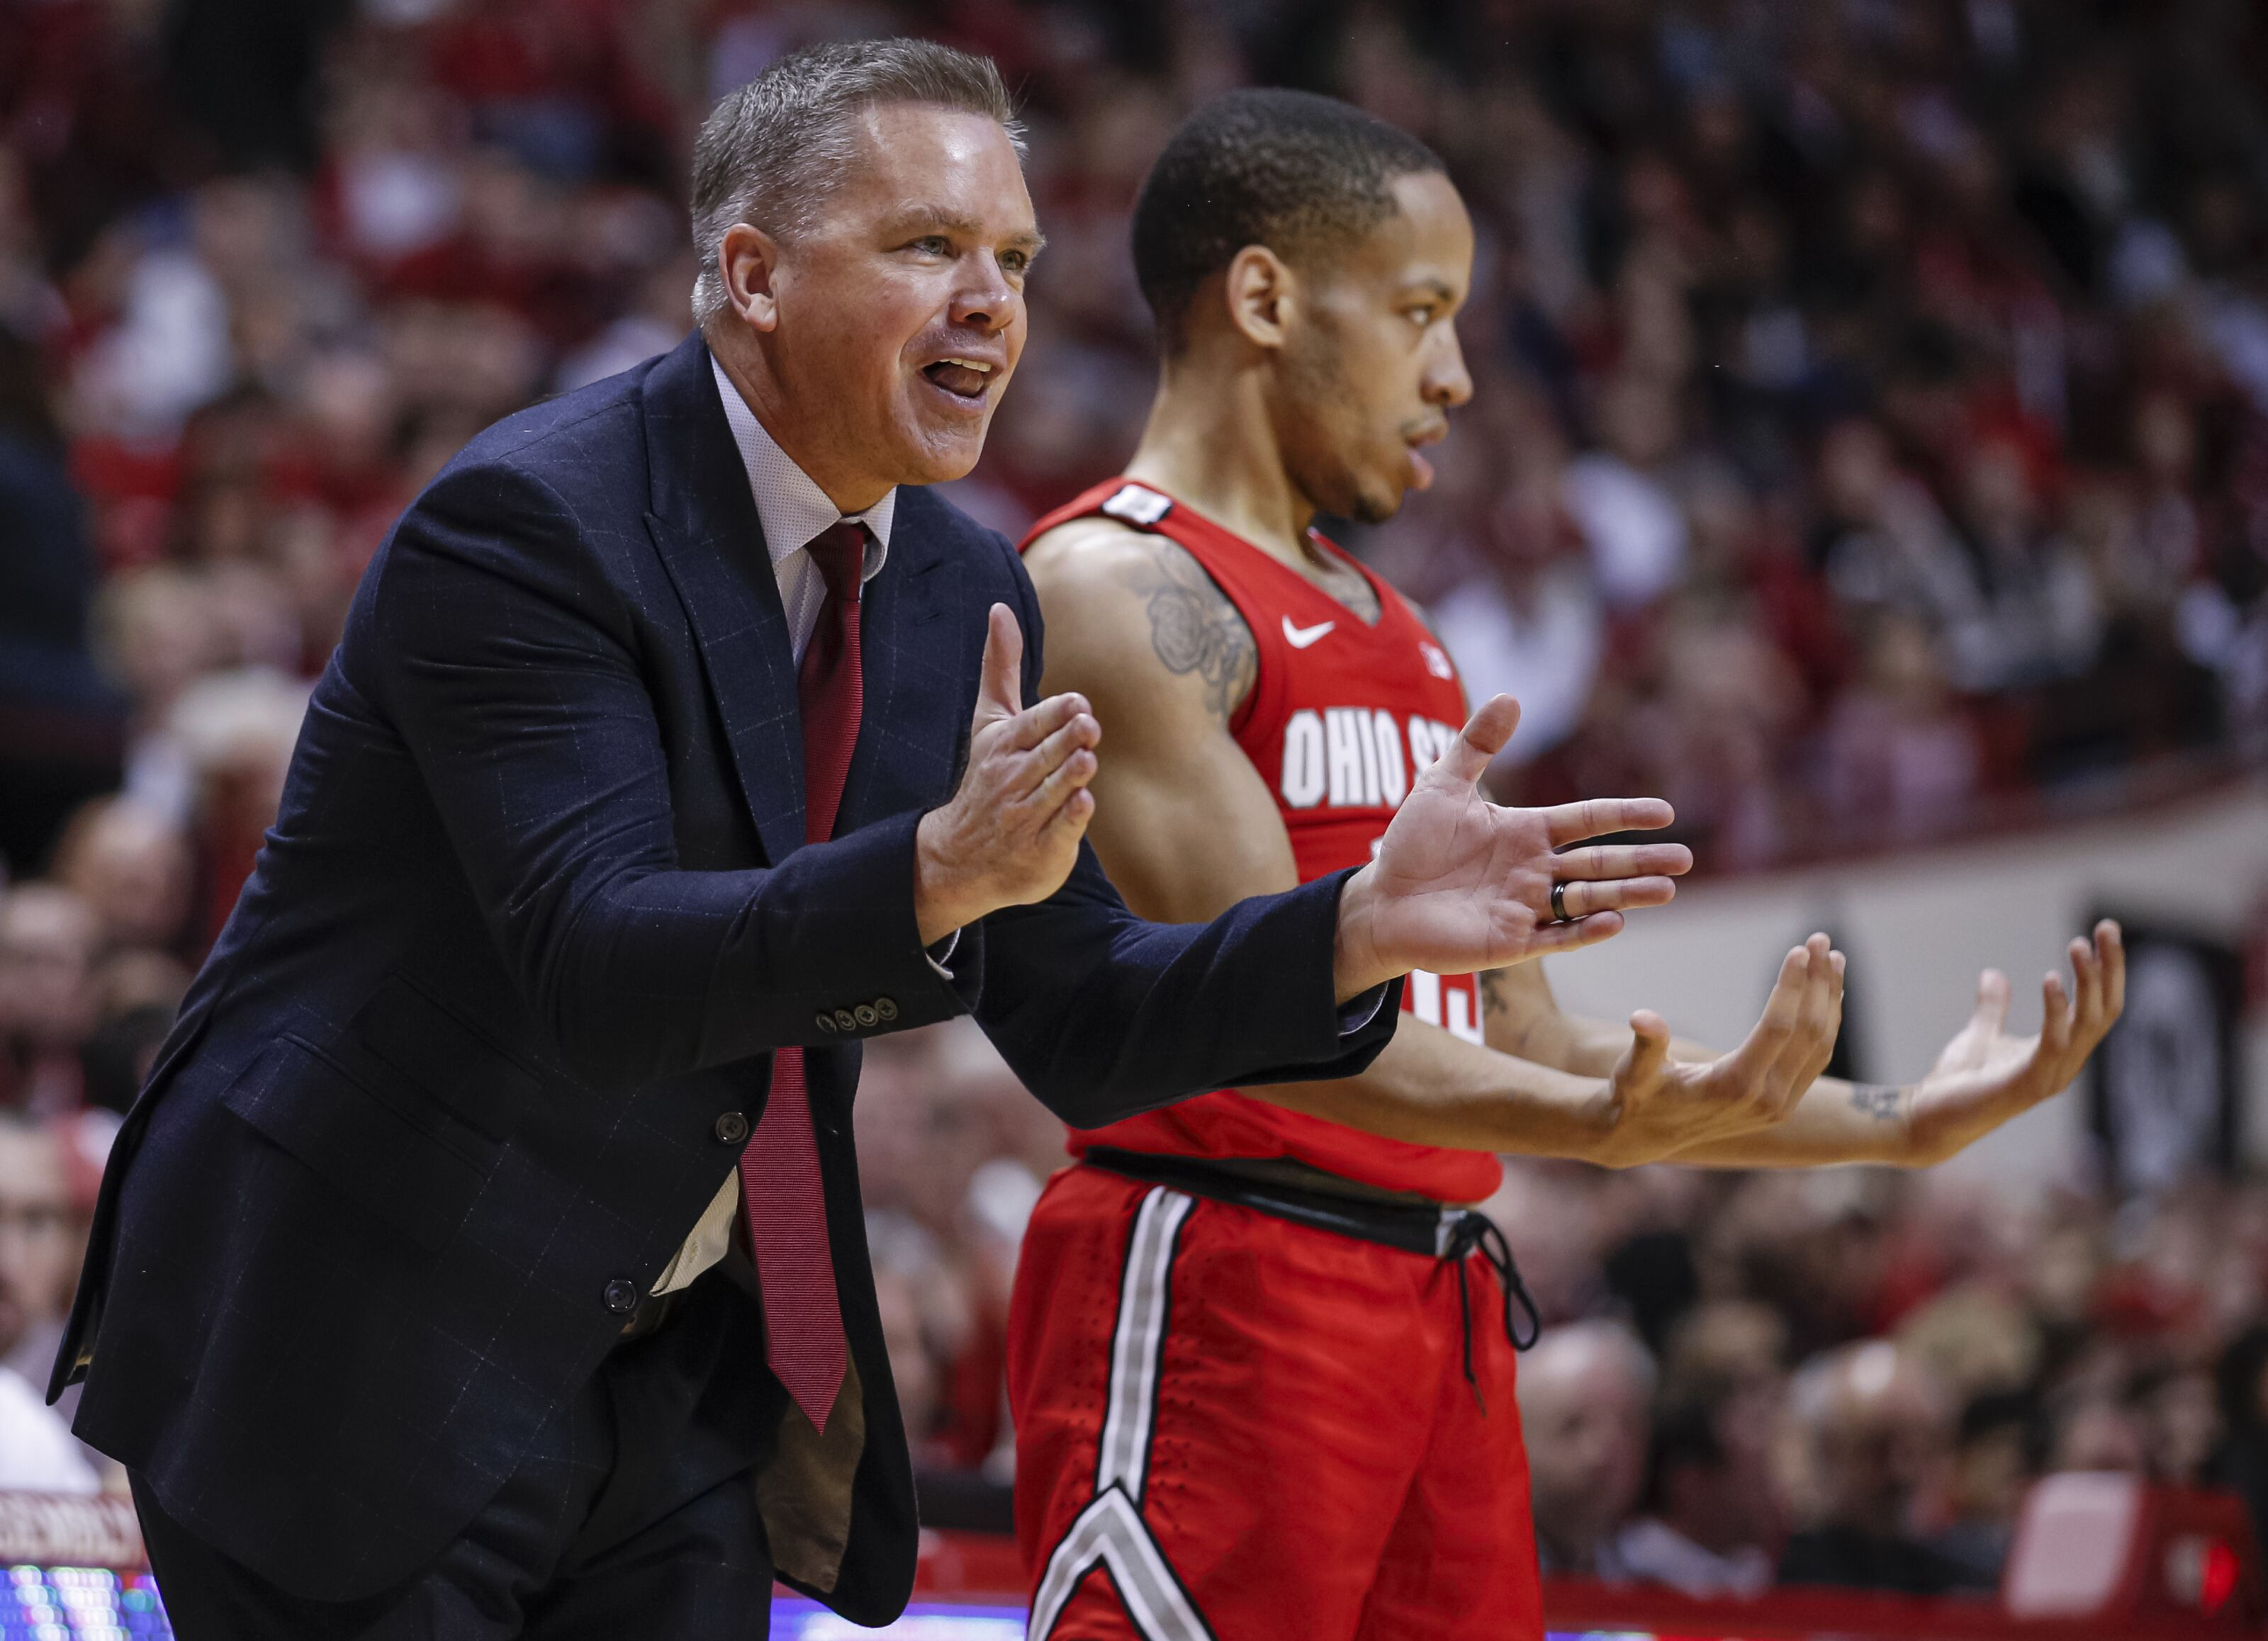 Ohio State Basketball: Will Buckeyes score 80 against Nittany Lions?